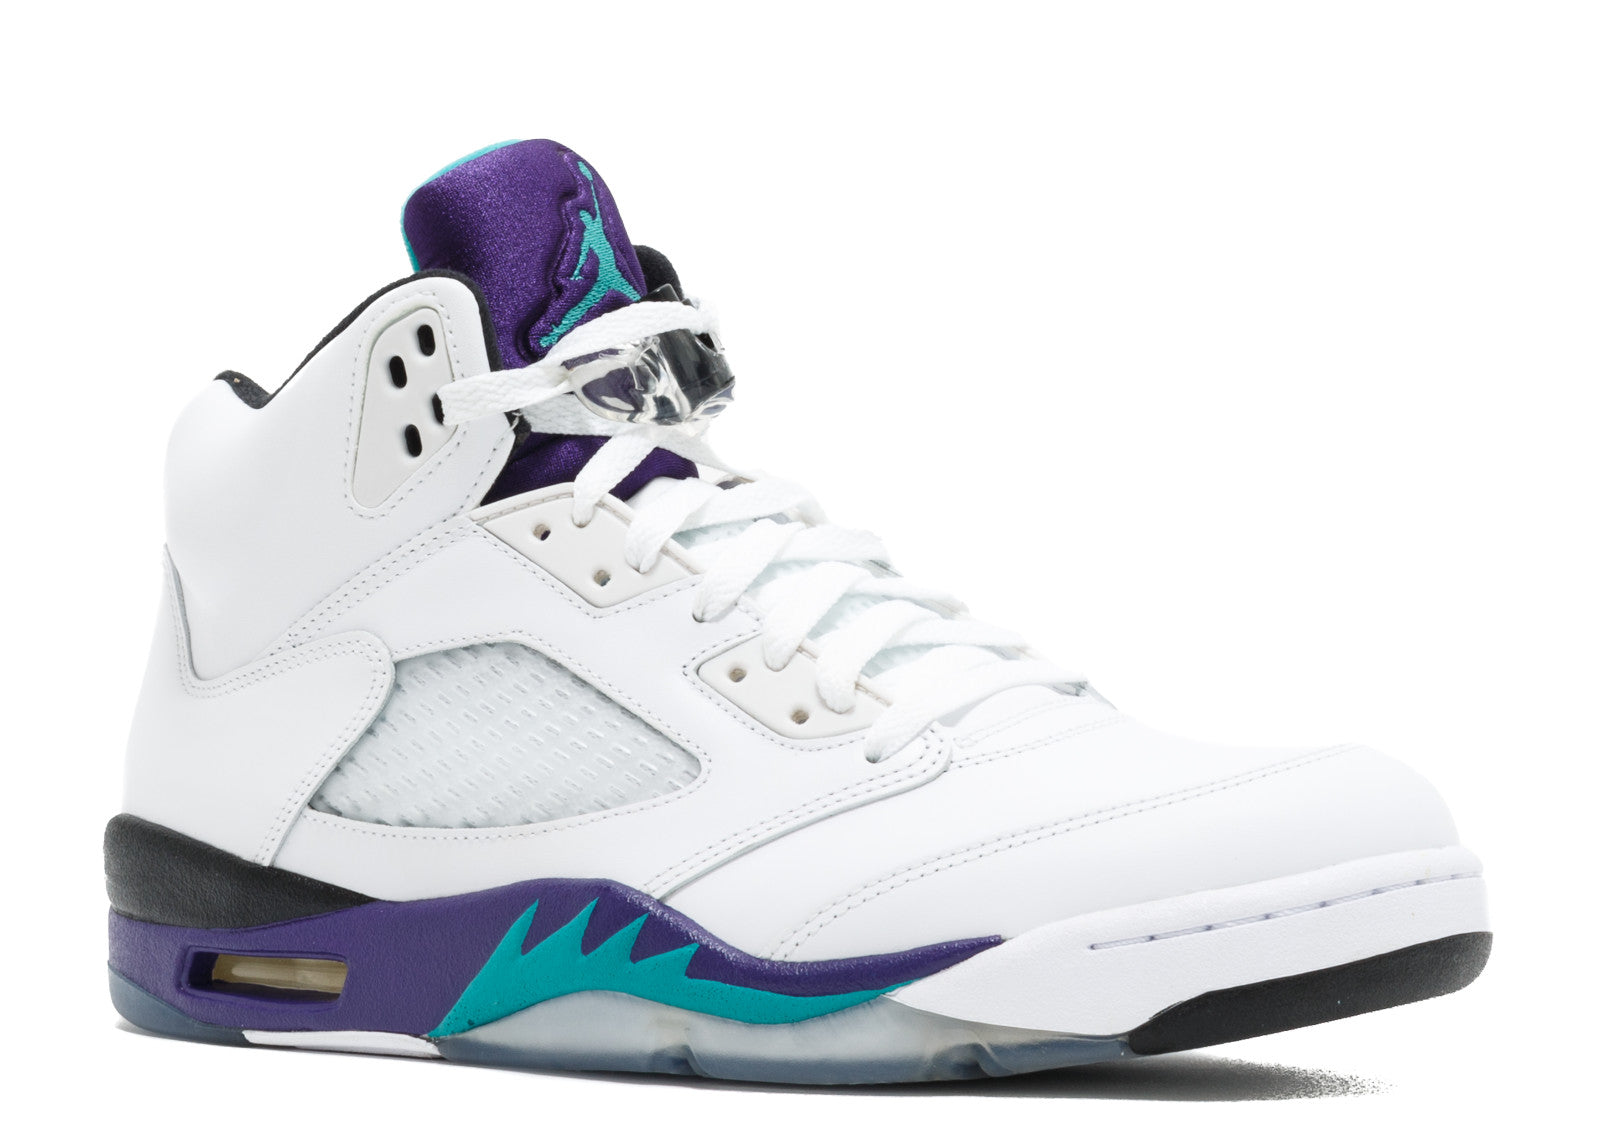 Nike Air Jordan 5 Retro 'White Grape'